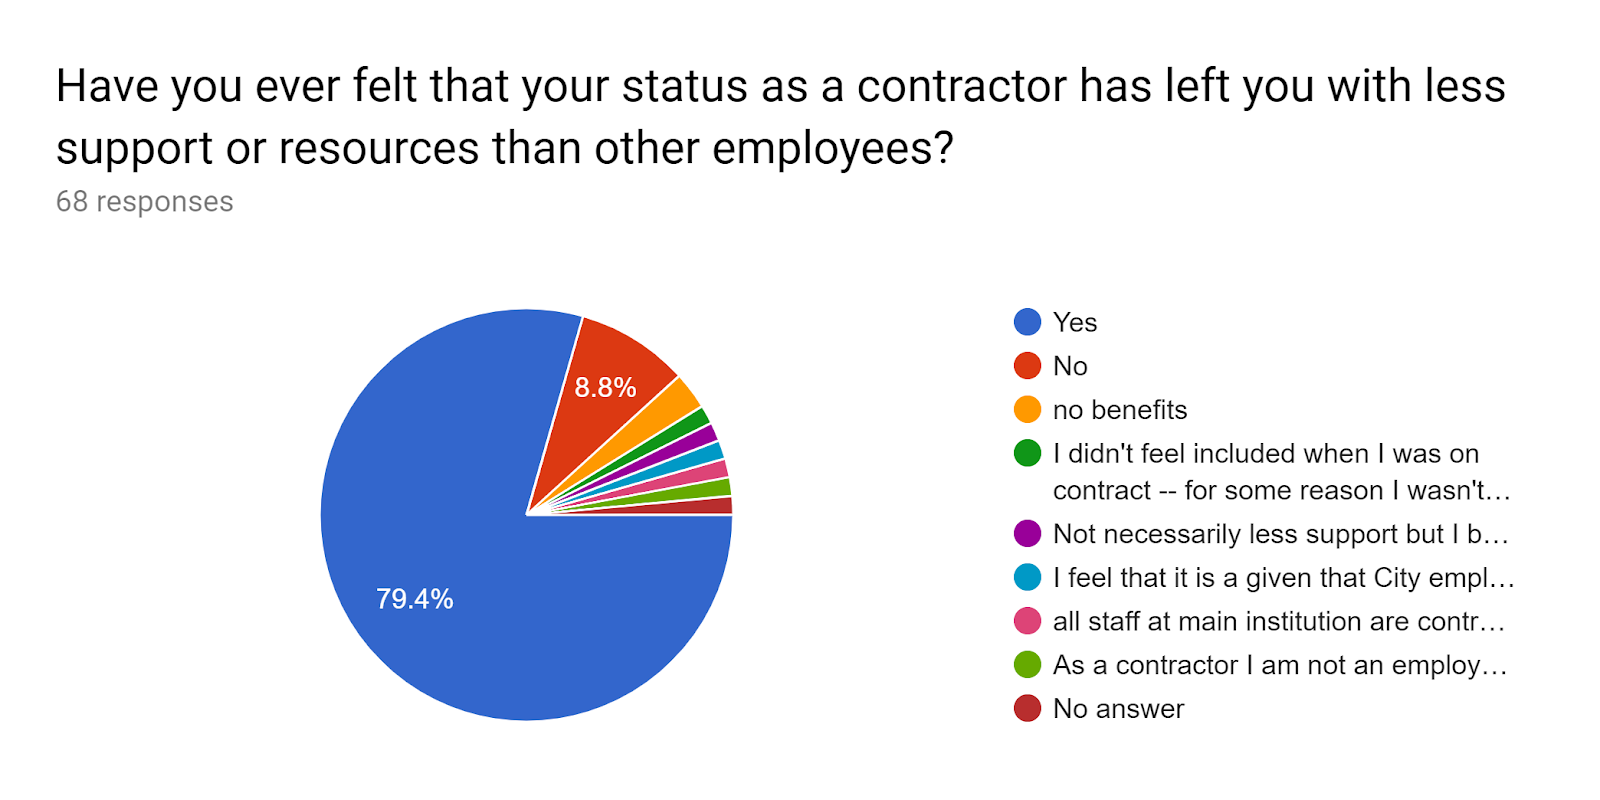 Forms response chart. Question title: Have you ever felt that your status as a contractor has left you with less support or resources than other employees?. Number of responses: 68 responses.